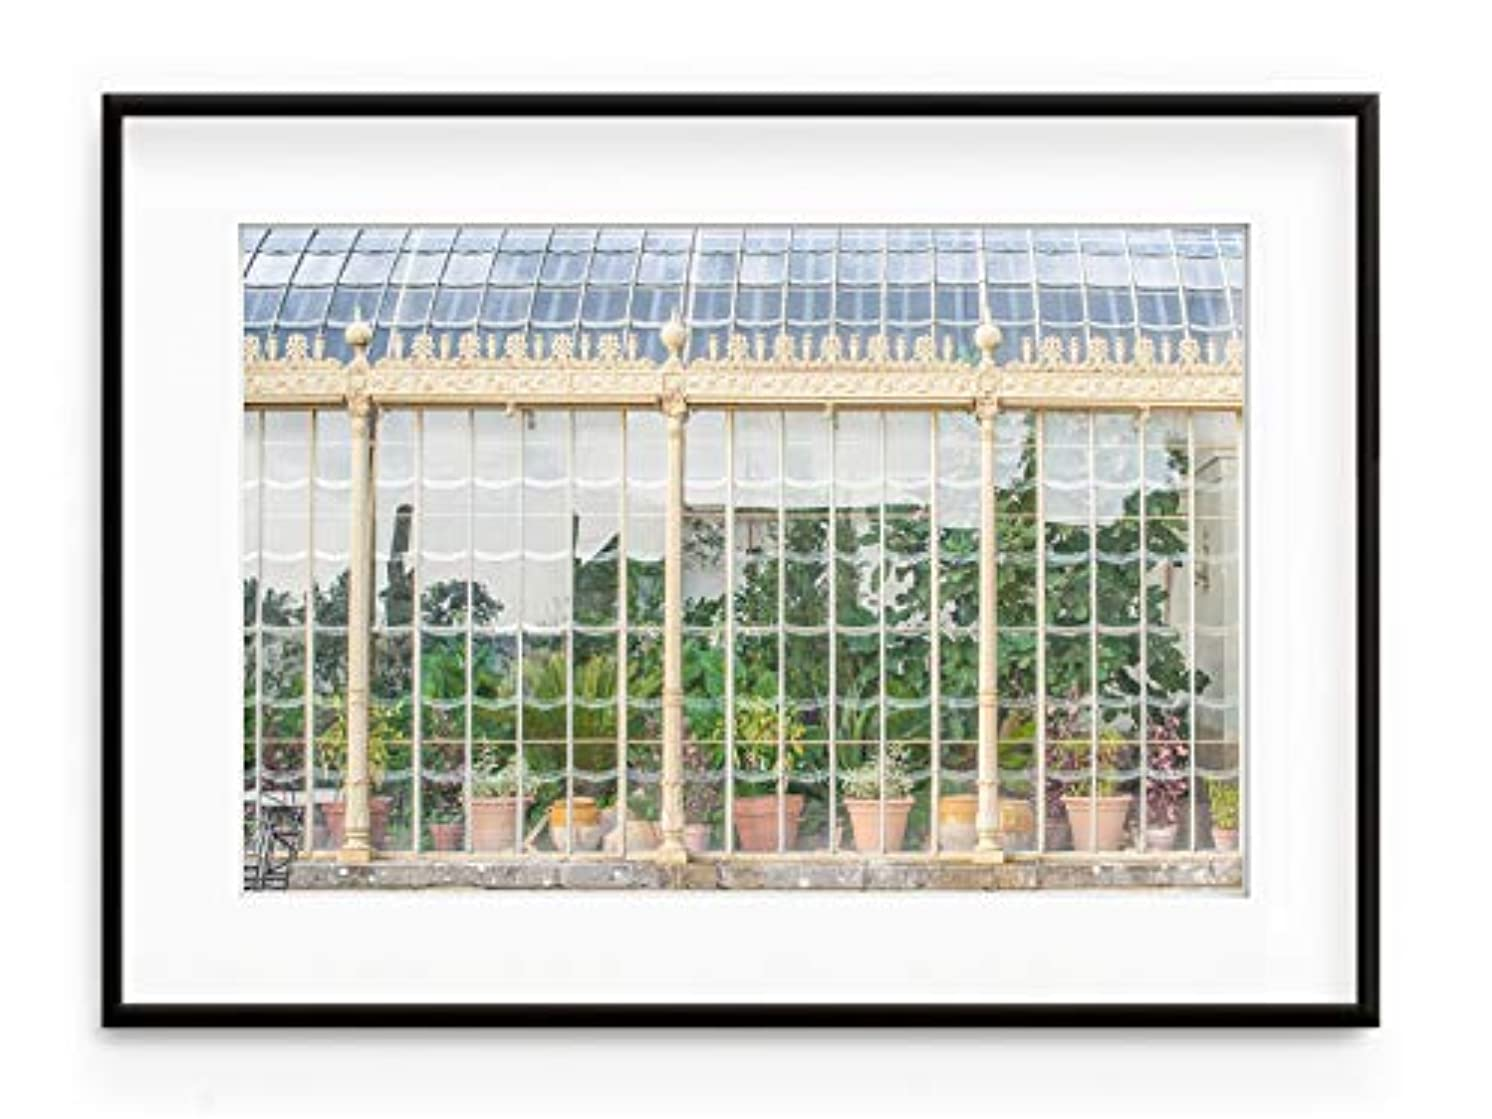 Green House Black Satin Aluminium Frame with Mount, Multicolored, 30x40